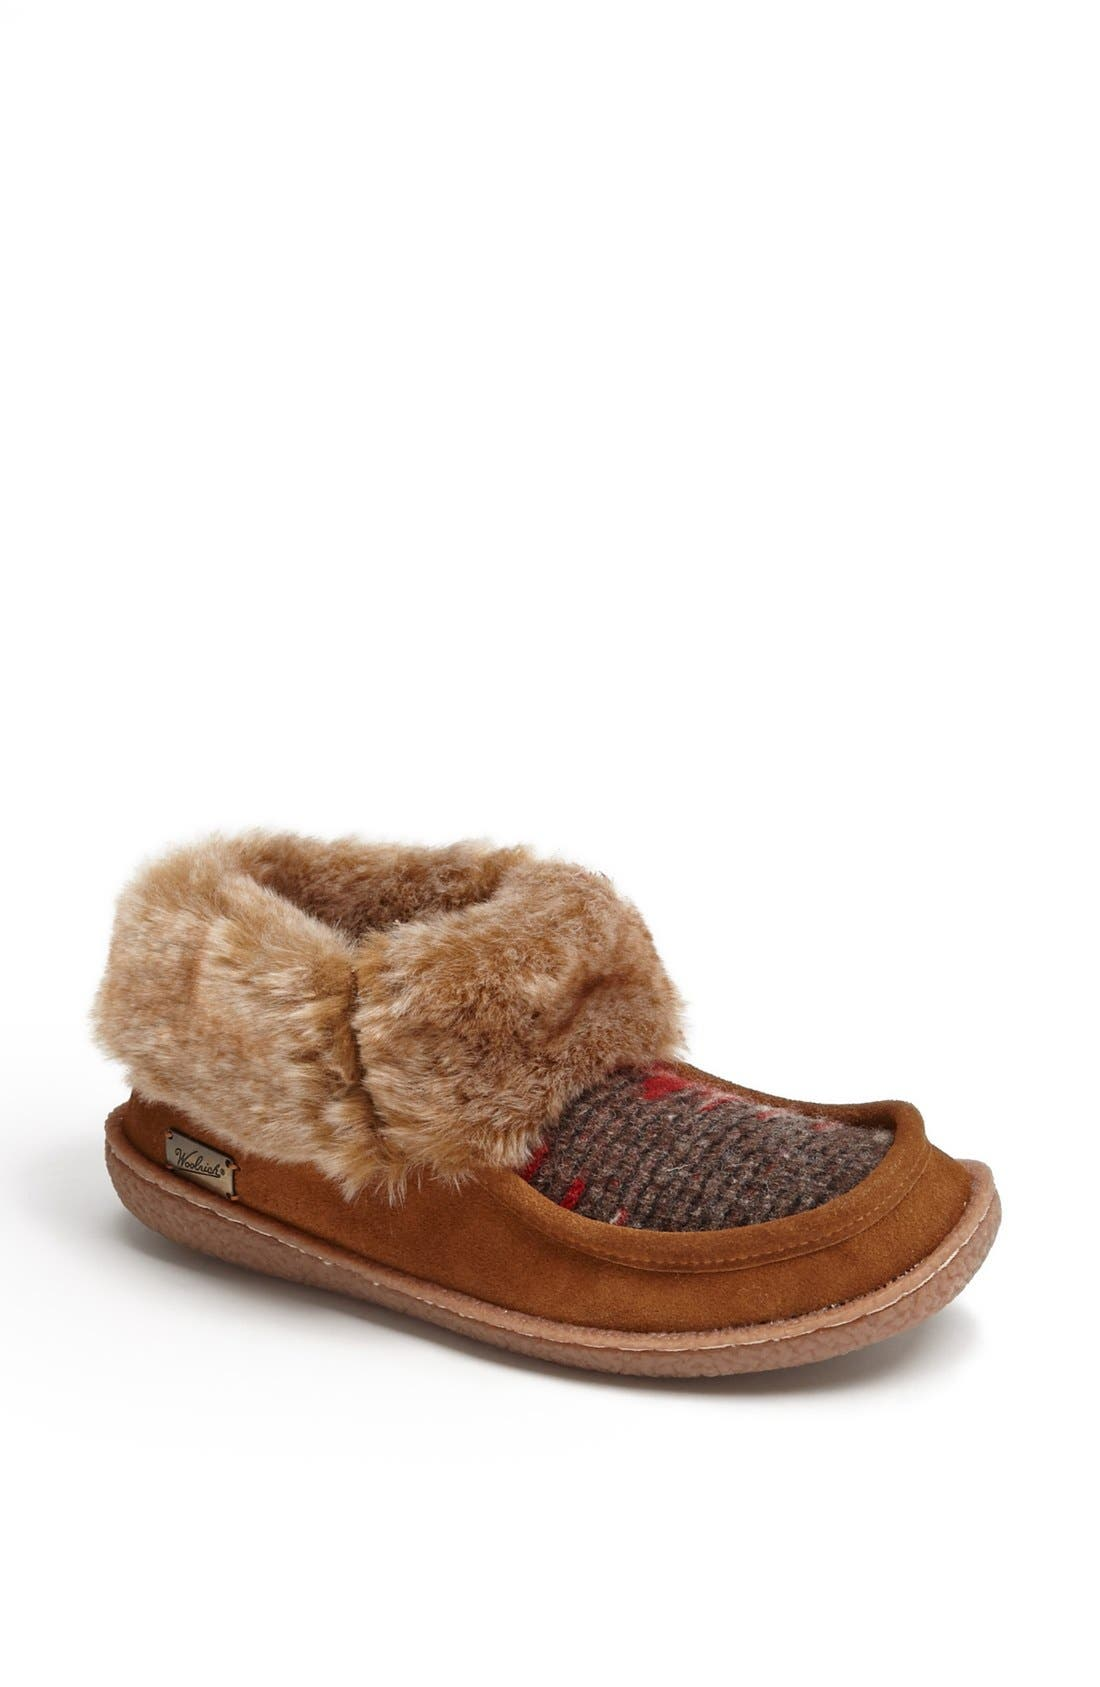 Woolrich 'Autumn Ridge' Slipper Bootie (Women)